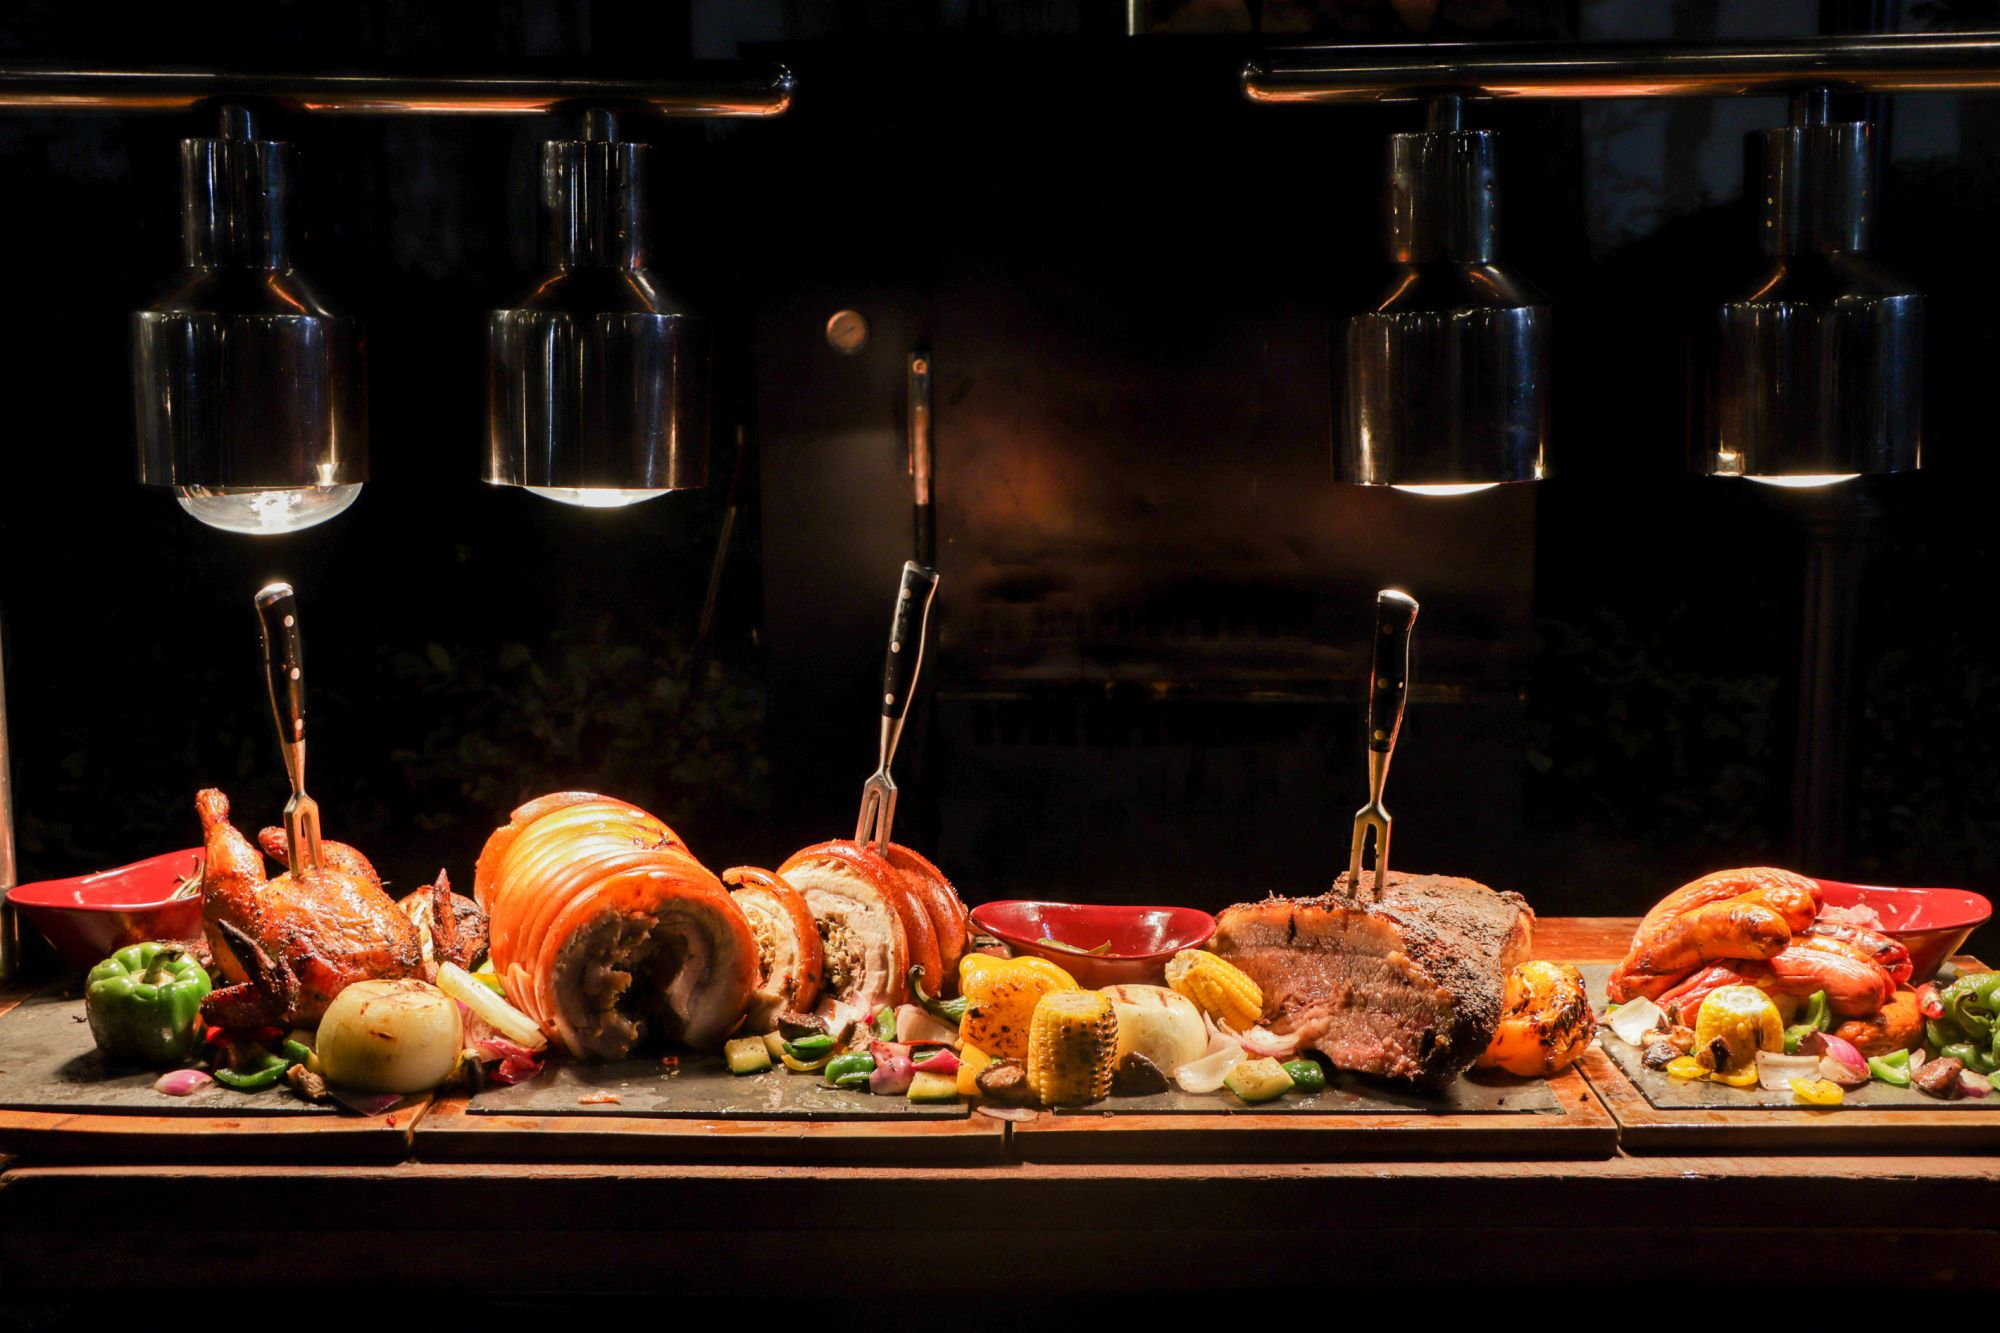 Succulent roast chicken, pork belly, and beef beautifully plated with an array of vegetables at Sofitel